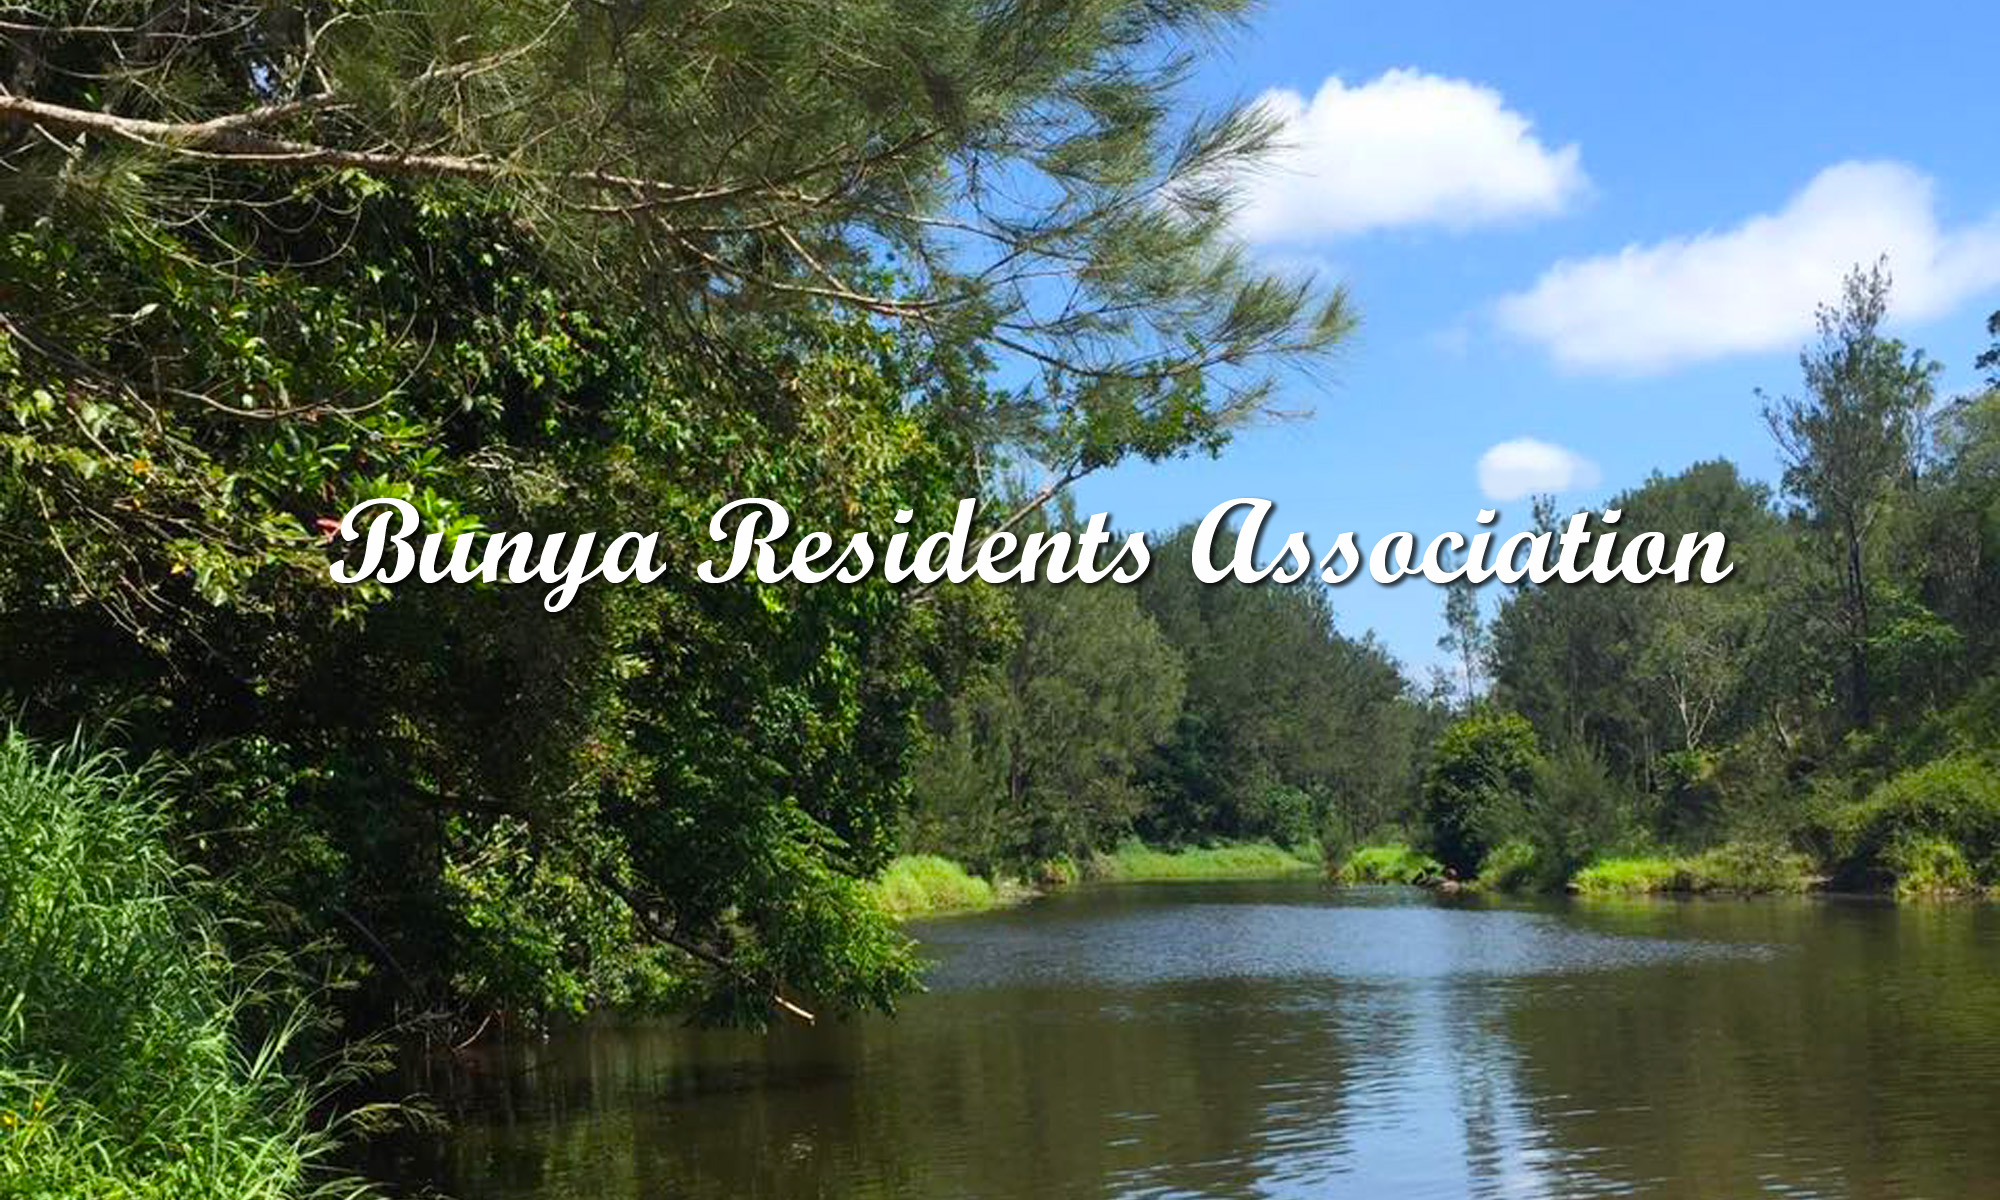 Bunya Residents Association